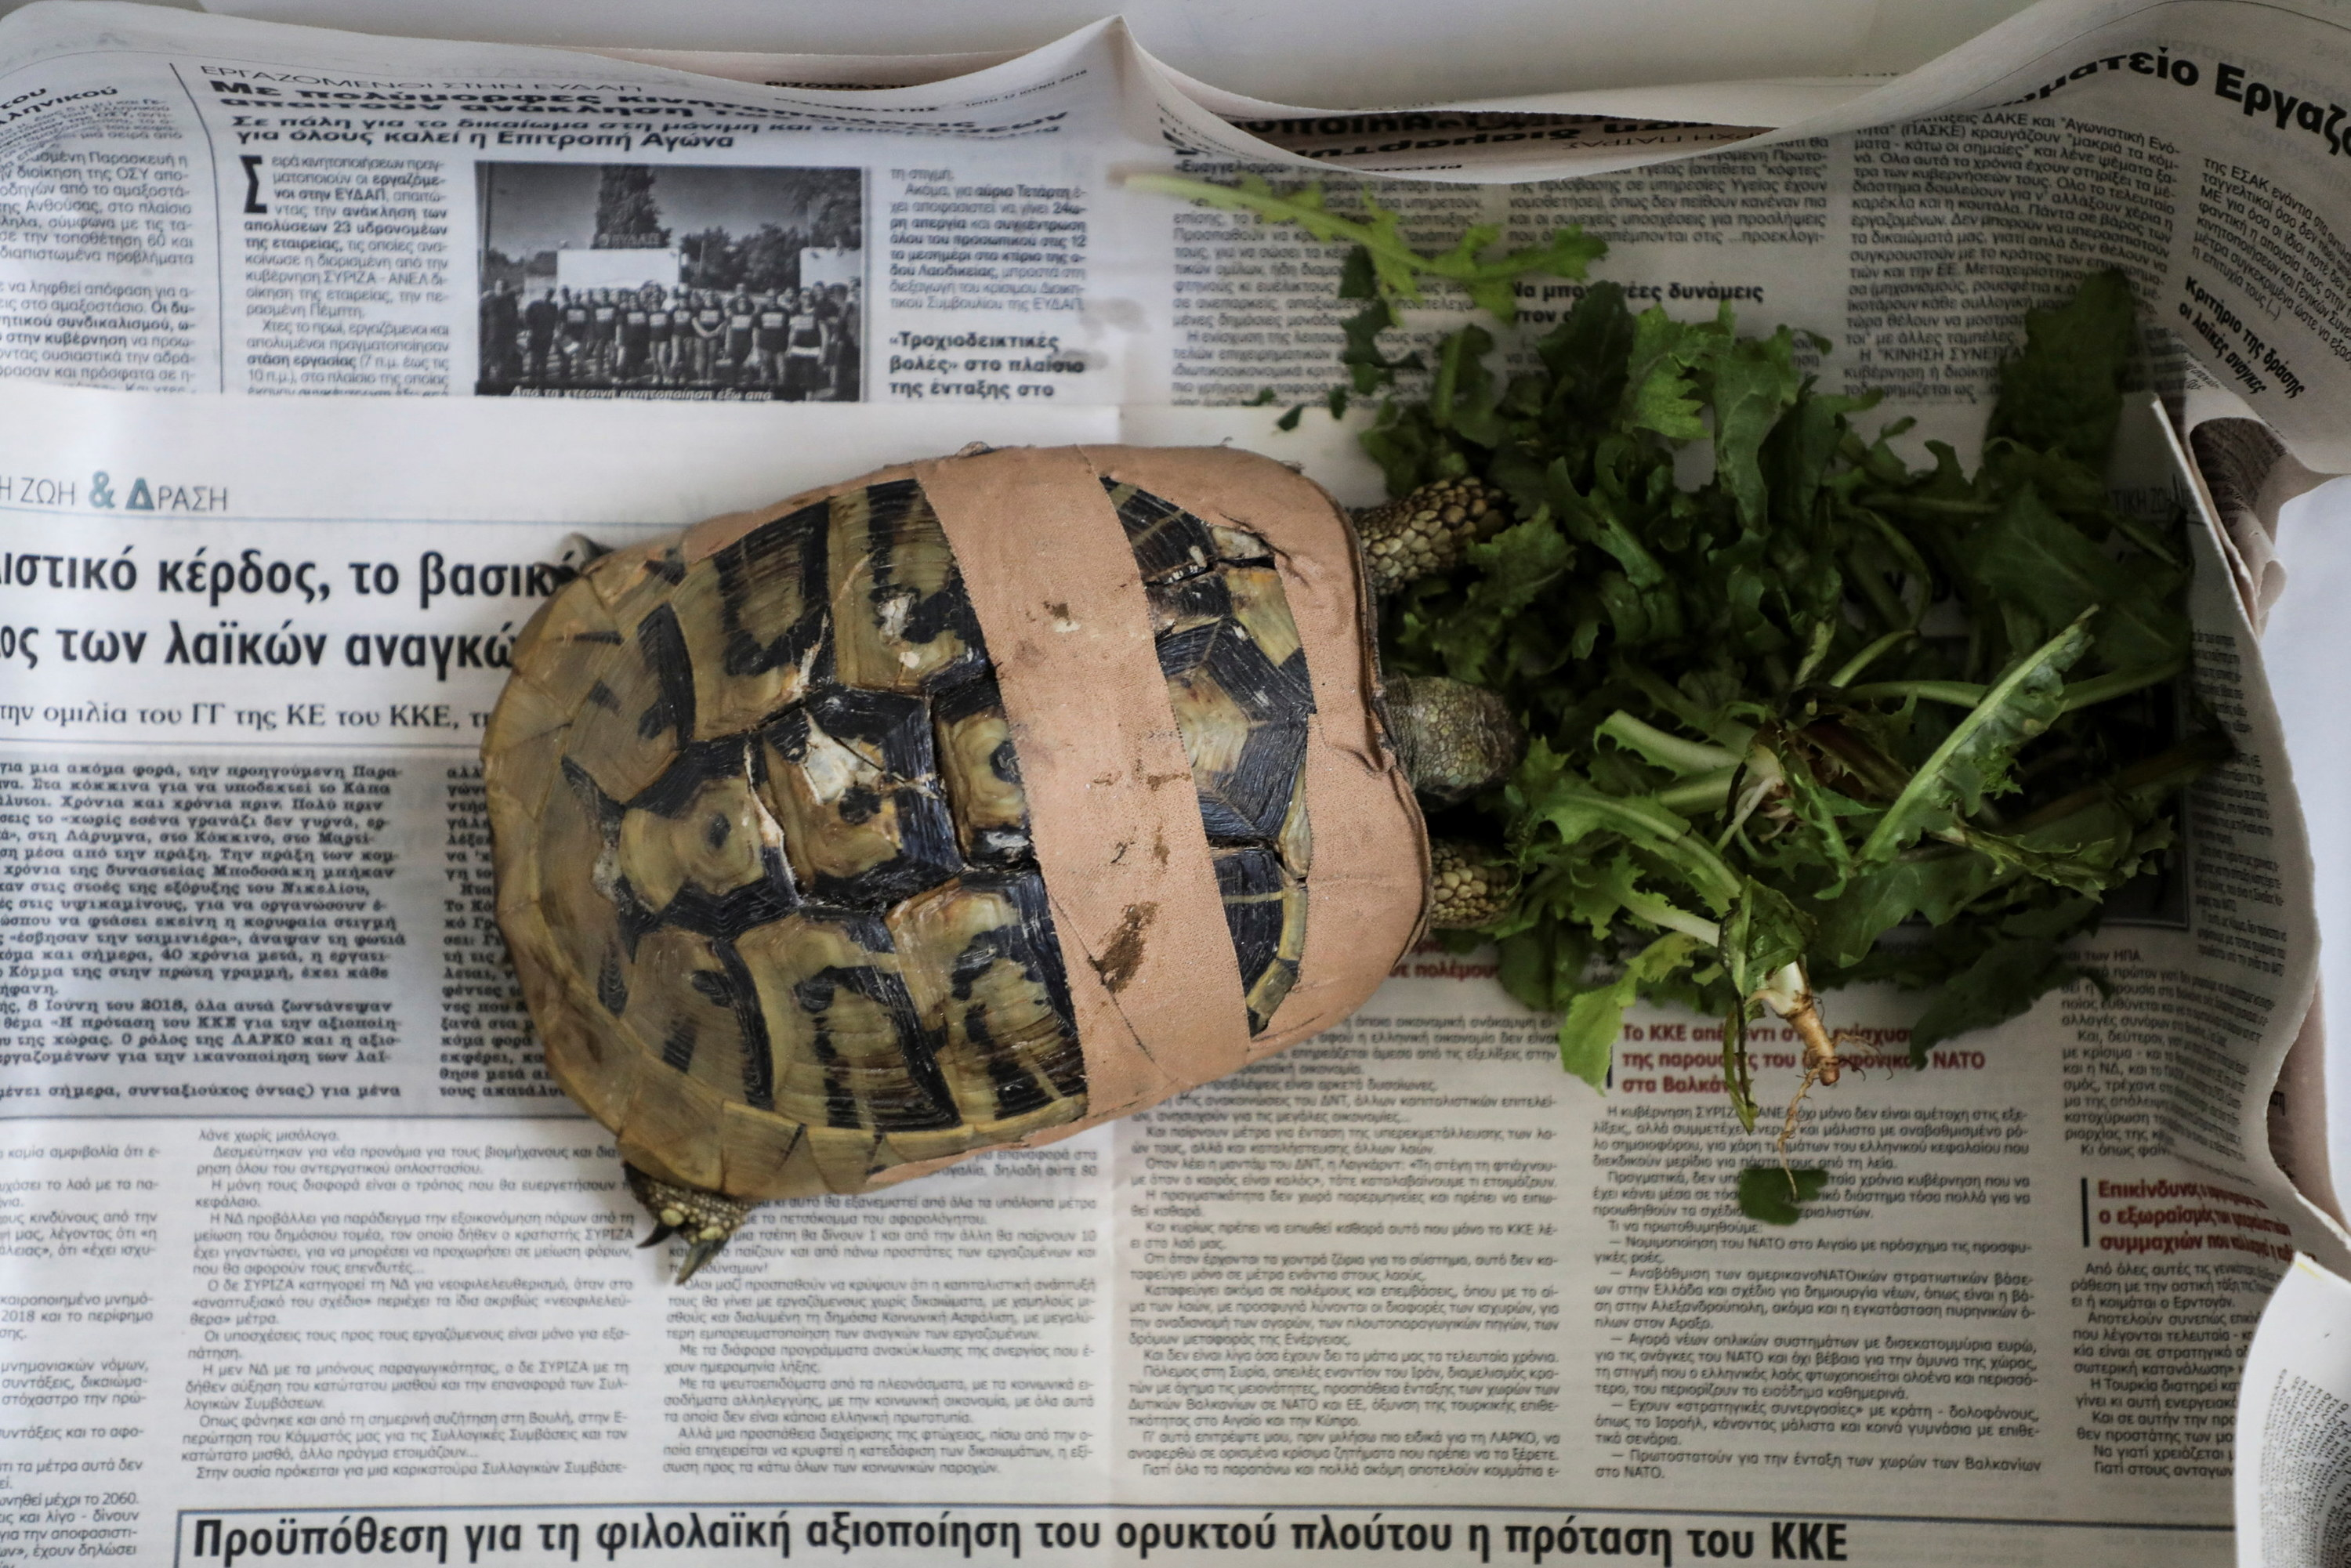 An injured turtle, with their shell wrapped in gauze, eats leafy greens and stands on a newspaper